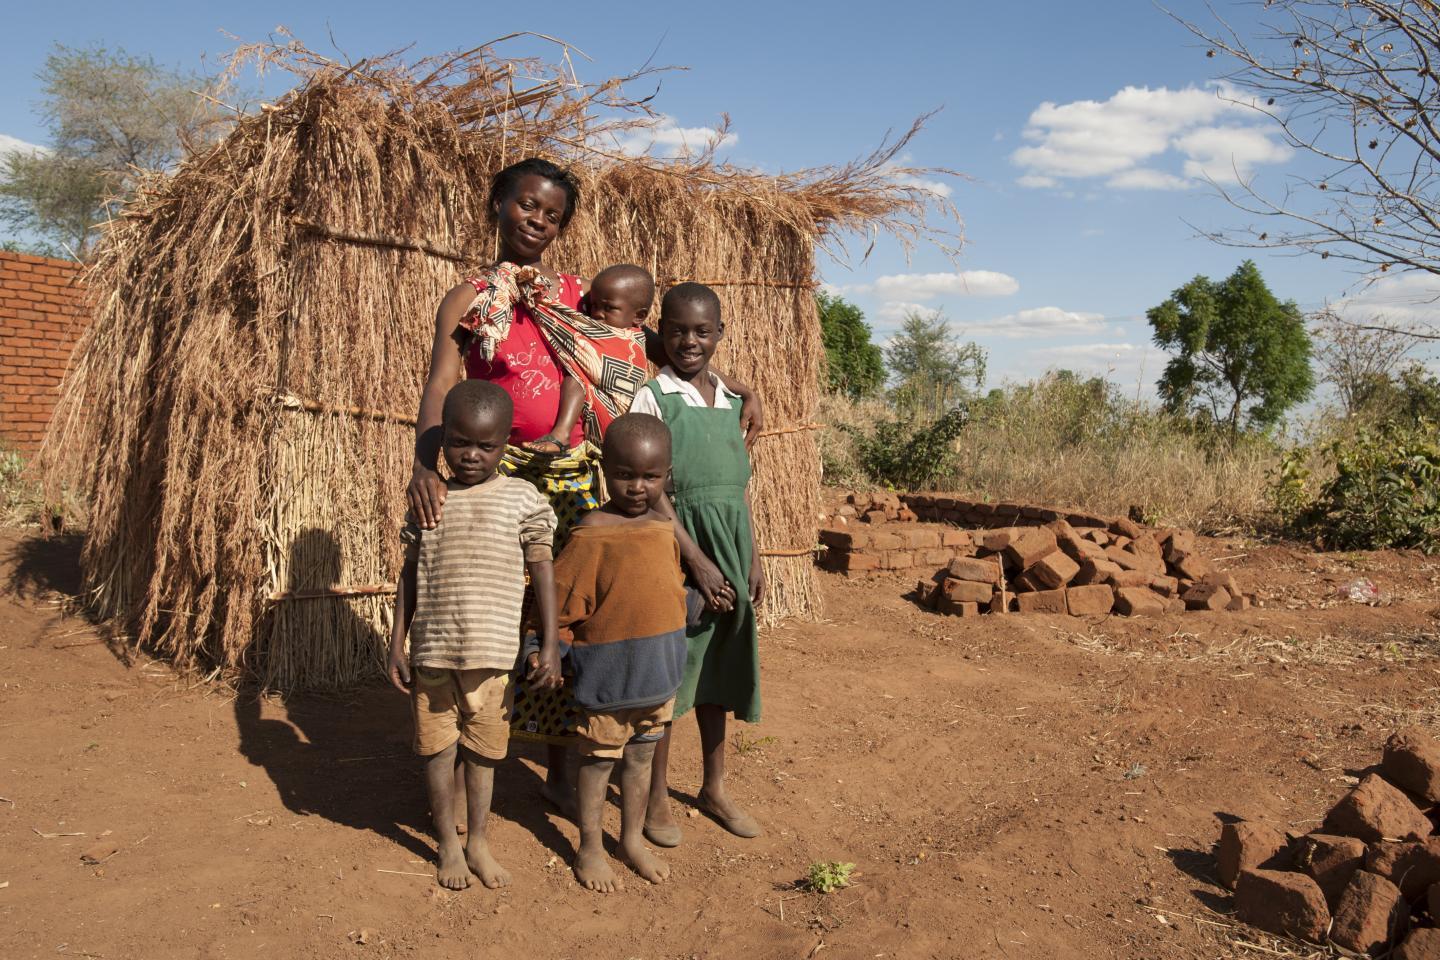 Alinafe and her family stand outside their only shelter, made from the husks of the maize plant in Balaka District in Malawi.